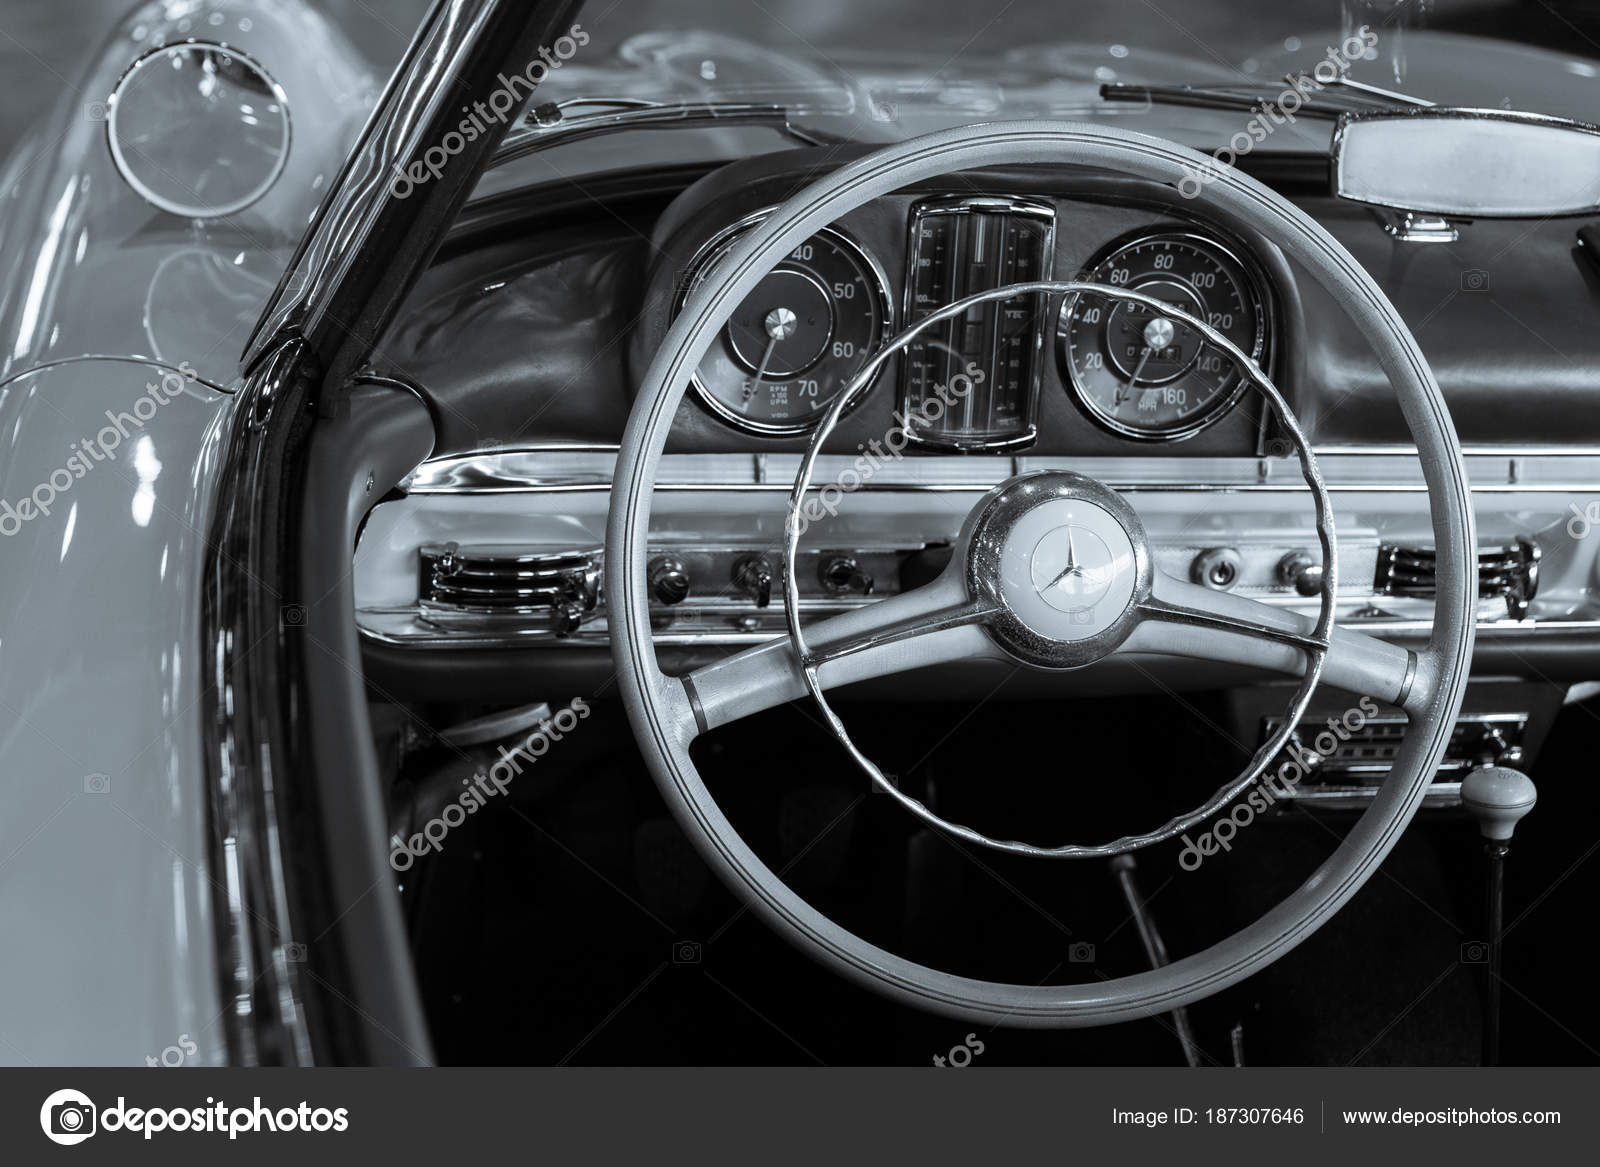 Wooden Steering Wheel And Leather Dashboard Of A Vintage Car Stock